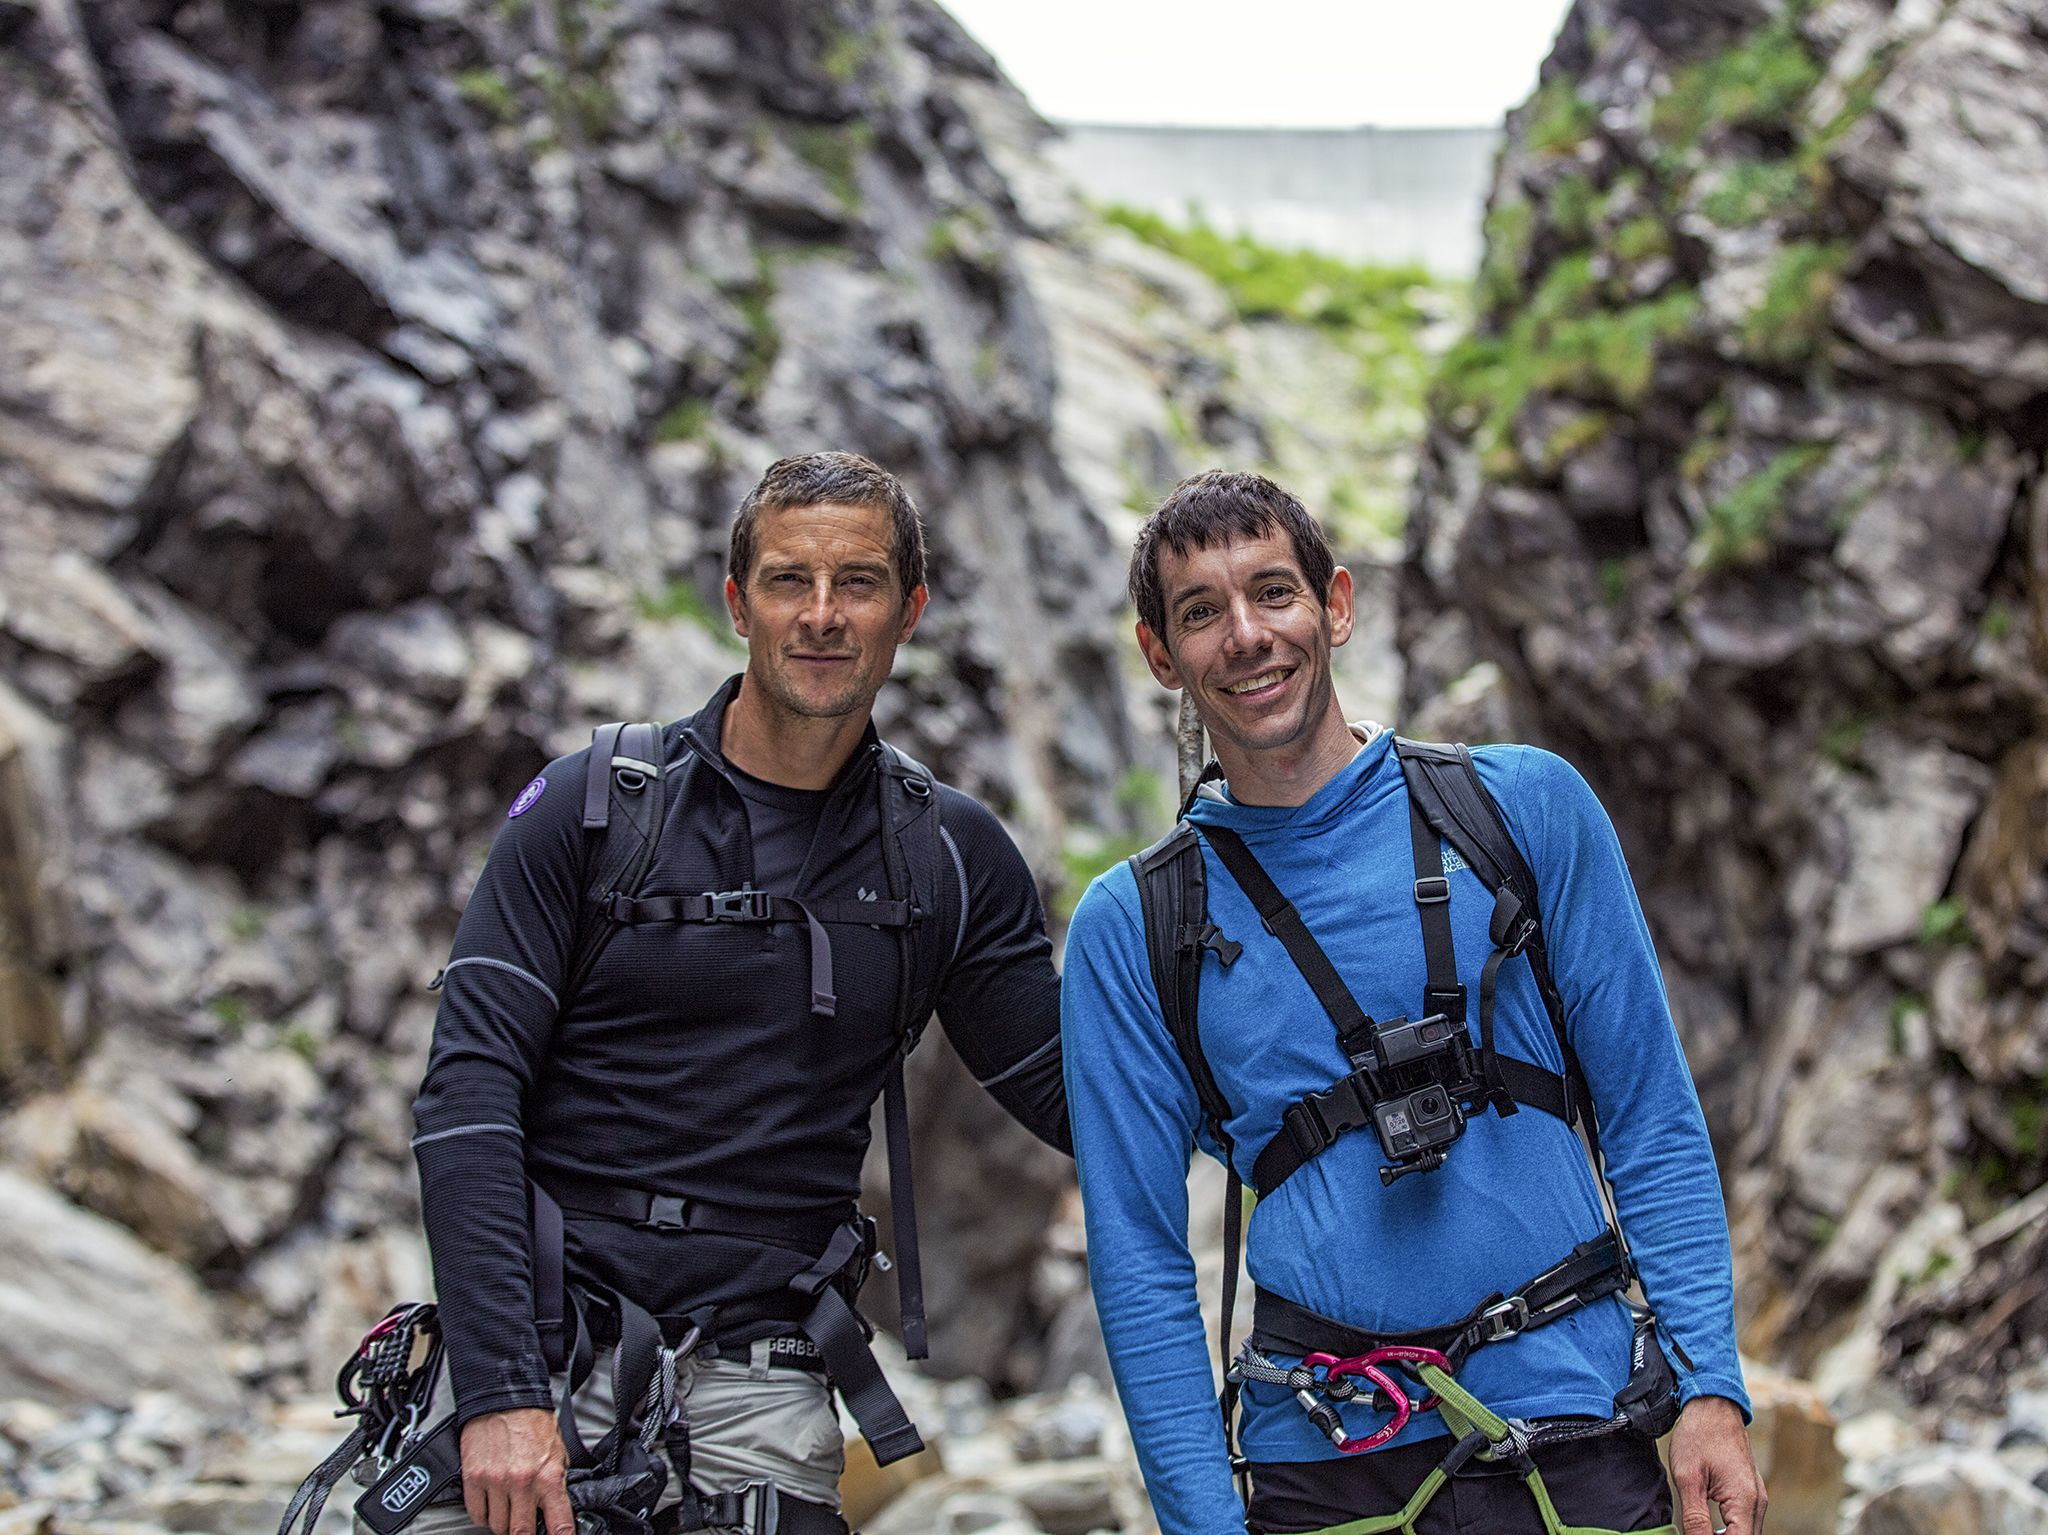 (L to R): Bear Grylls and Alex Honnold during production of National Geographic's Running Wild... [Photo of the day - نوامبر 2019]